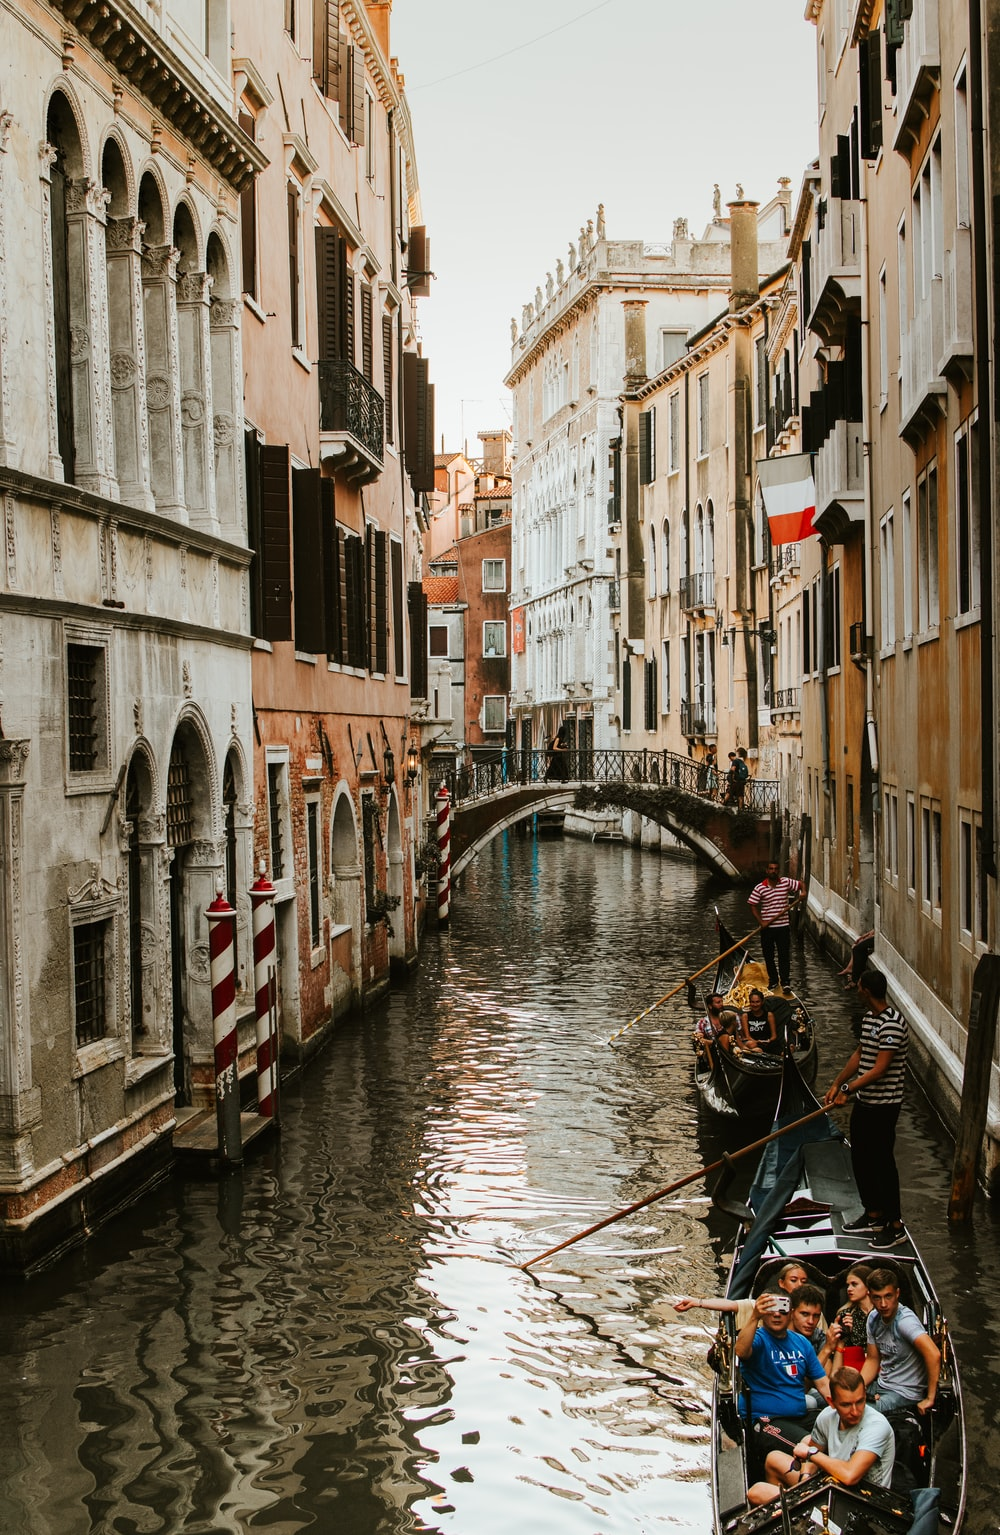 people riding boats floating on canal between buildings